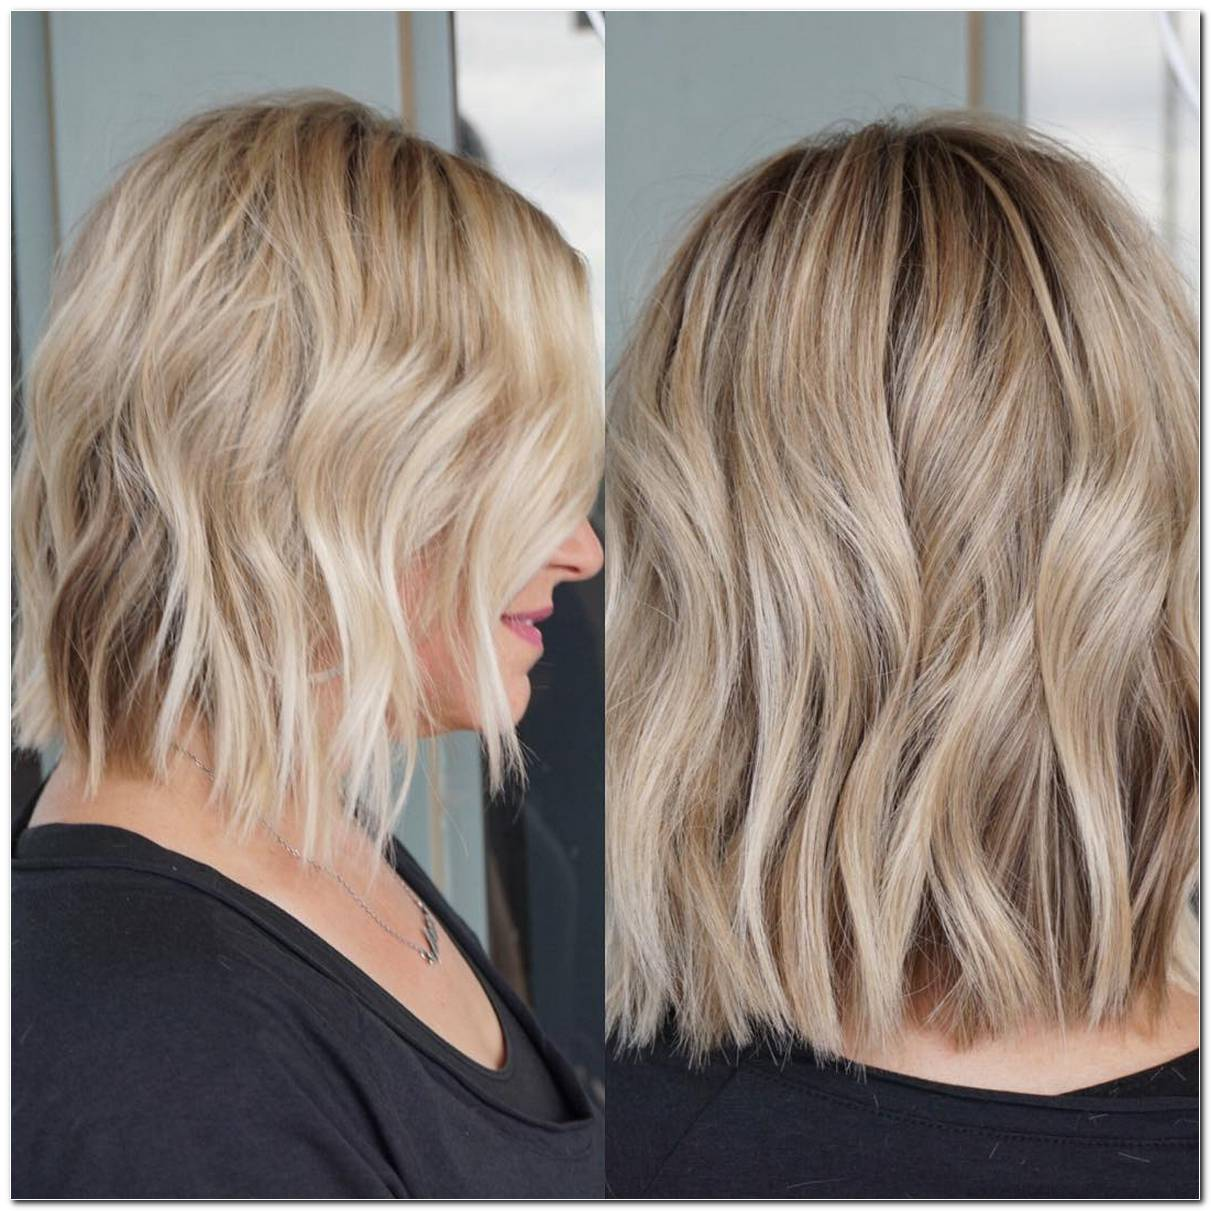 Frisuren Mittellanges Haar 2018